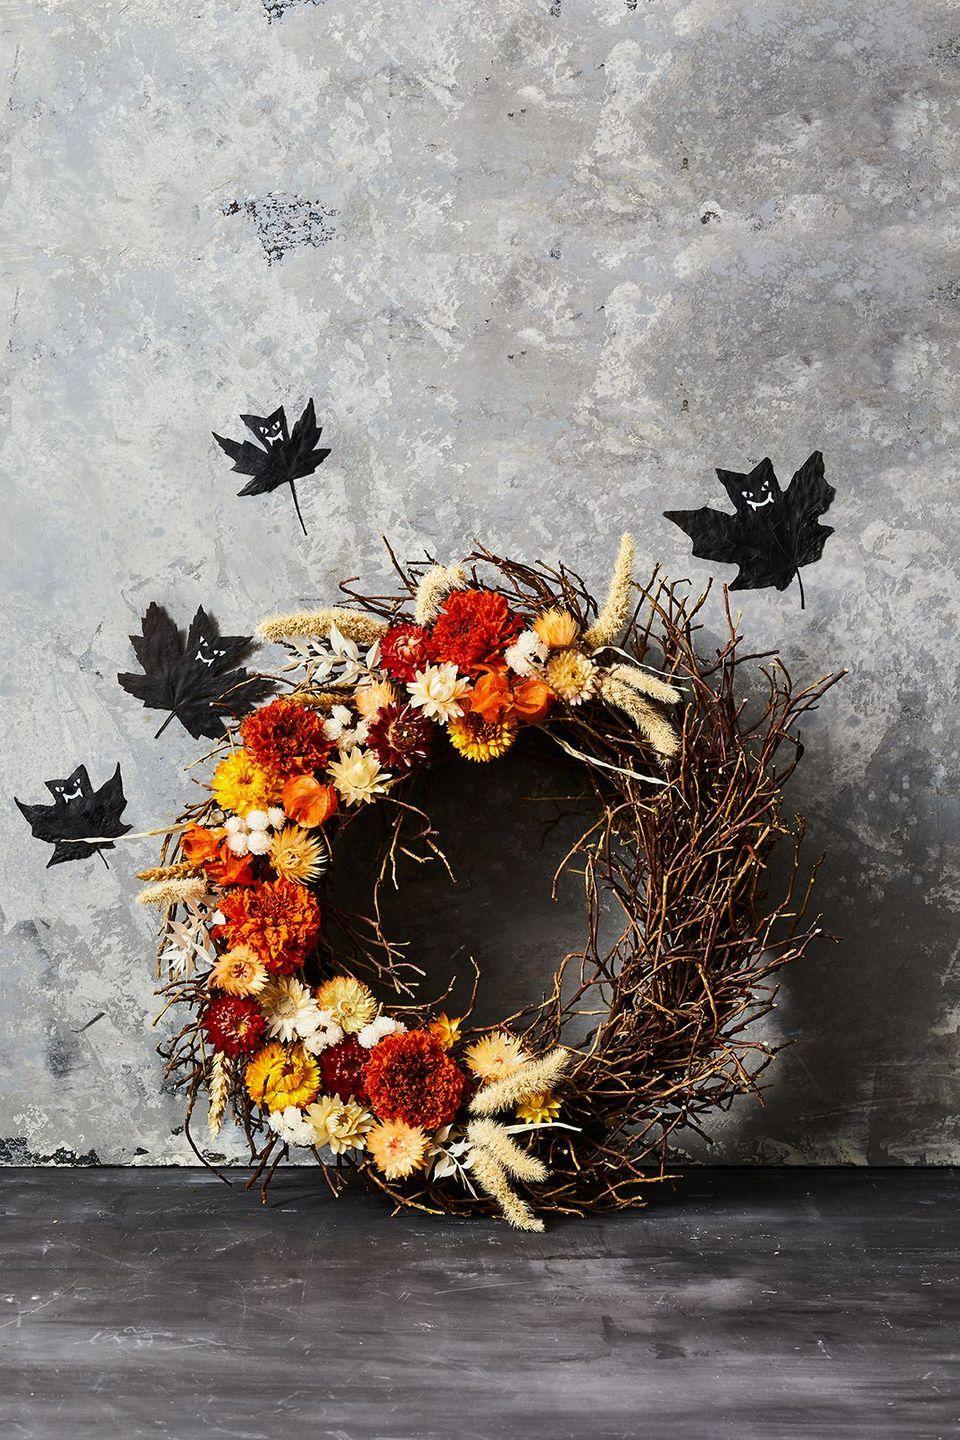 """<p>Add your leaf bats here for October, and once November comes remove them, but still keep this autumnal wreath up. To create, start with long skinny grass on the two ends of the crescent shape you are forming to mark the end. Hot glue them into place. Fill in the middle with a mix of all the dried flowers you have collected making sure to mix in more grass and long skinny shapes between the flowers to keep it balanced. Hot glue each thing you add to ensure it is secure. Finish the wreath off by attaching a ribbon around the top or just hang it on a hook on your door or wall.</p><p><a class=""""link rapid-noclick-resp"""" href=""""https://www.amazon.com/HAKACC-Grapevine-Wreaths-Holiday-Decoration/dp/B087PZLTNN/?tag=syn-yahoo-20&ascsubtag=%5Bartid%7C10055.g.421%5Bsrc%7Cyahoo-us"""" rel=""""nofollow noopener"""" target=""""_blank"""" data-ylk=""""slk:SHOP GRAPEVINE WREATH"""">SHOP GRAPEVINE WREATH</a></p>"""